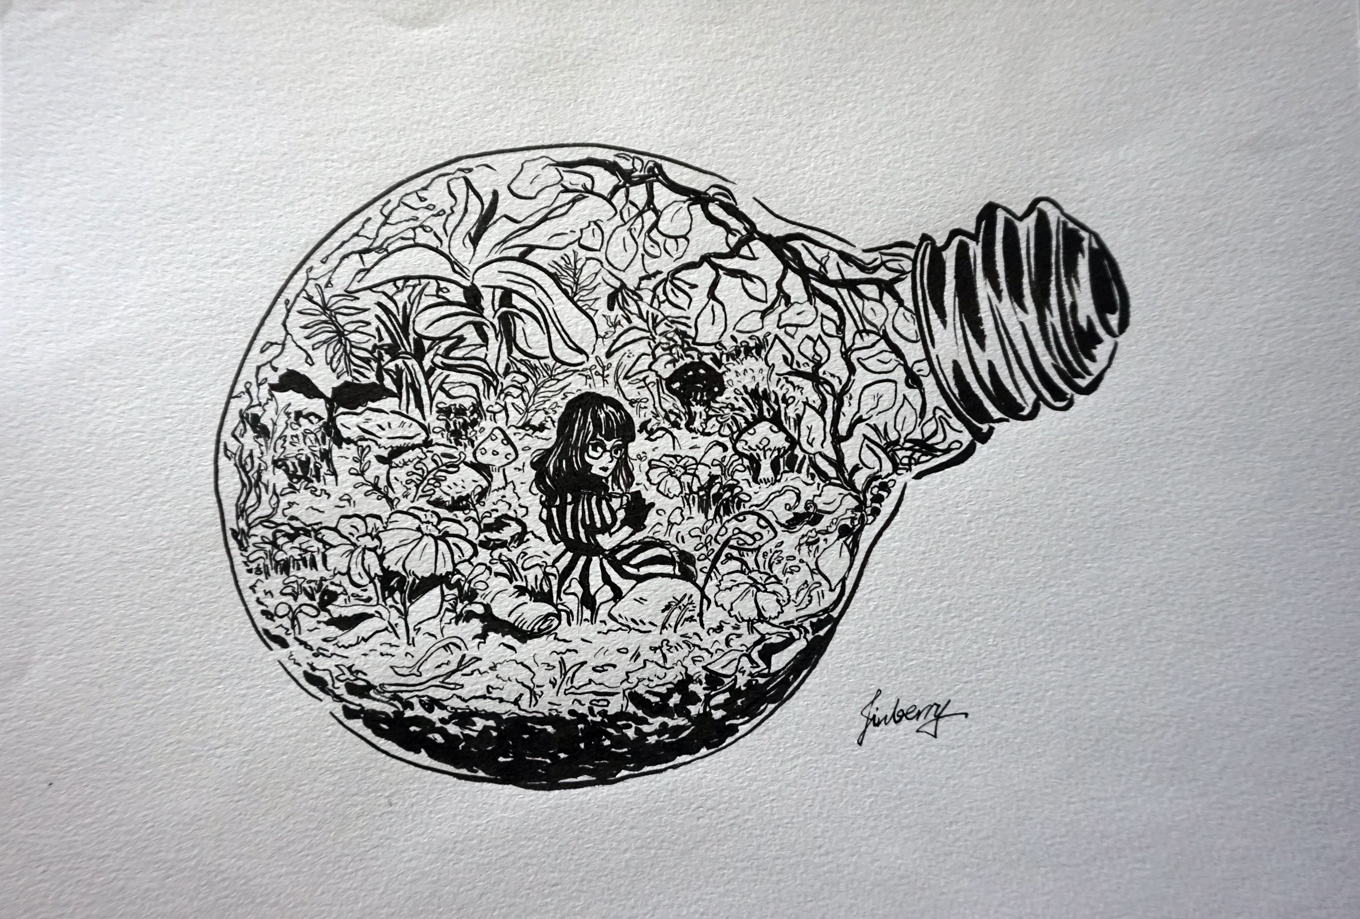 Living In A Terrarium Original Artwork Unframed Sold By Jinberry On Storenvy